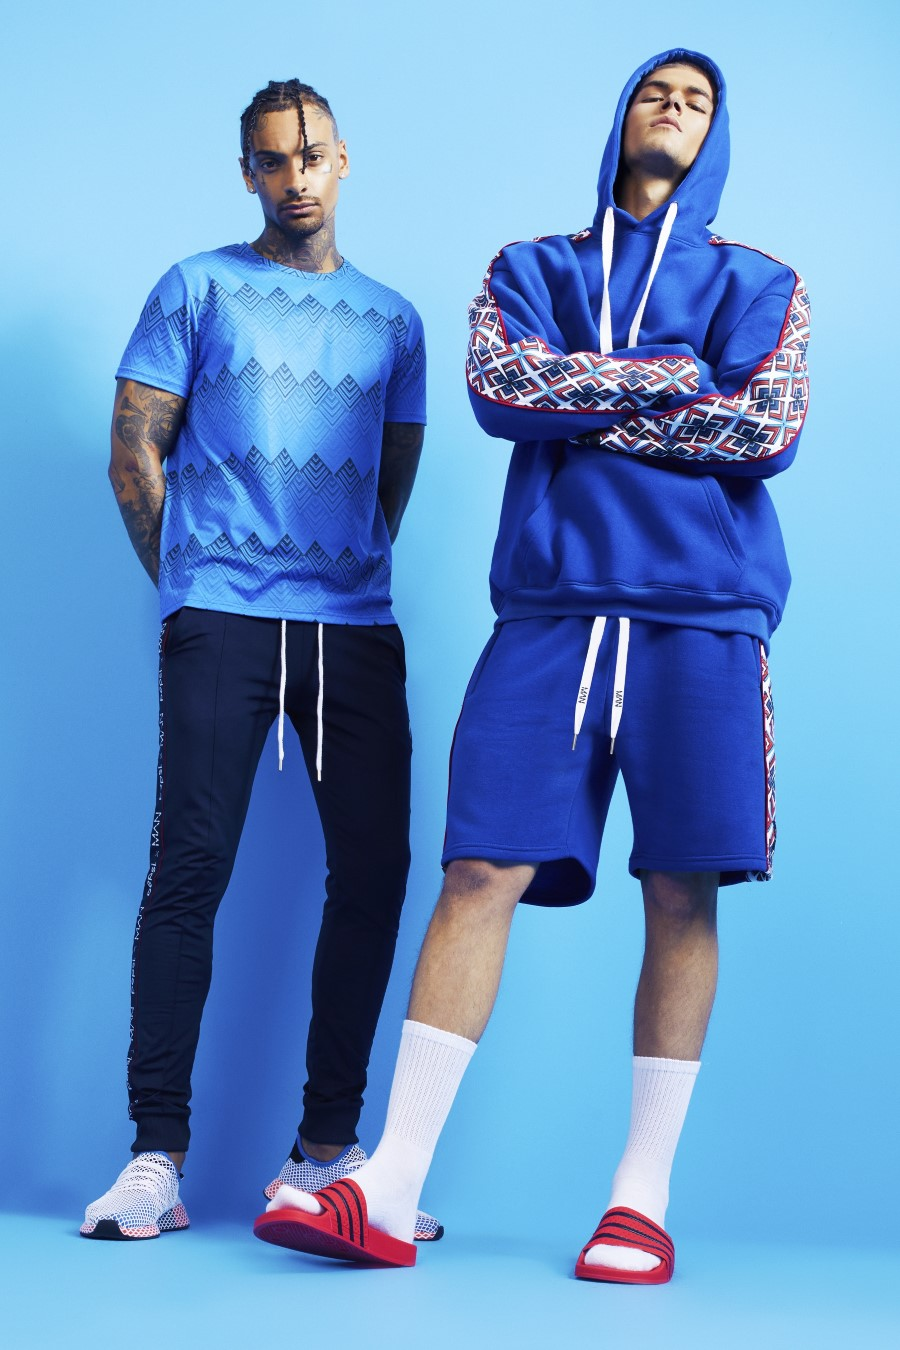 Pepsi x boohoo - The Art of Football